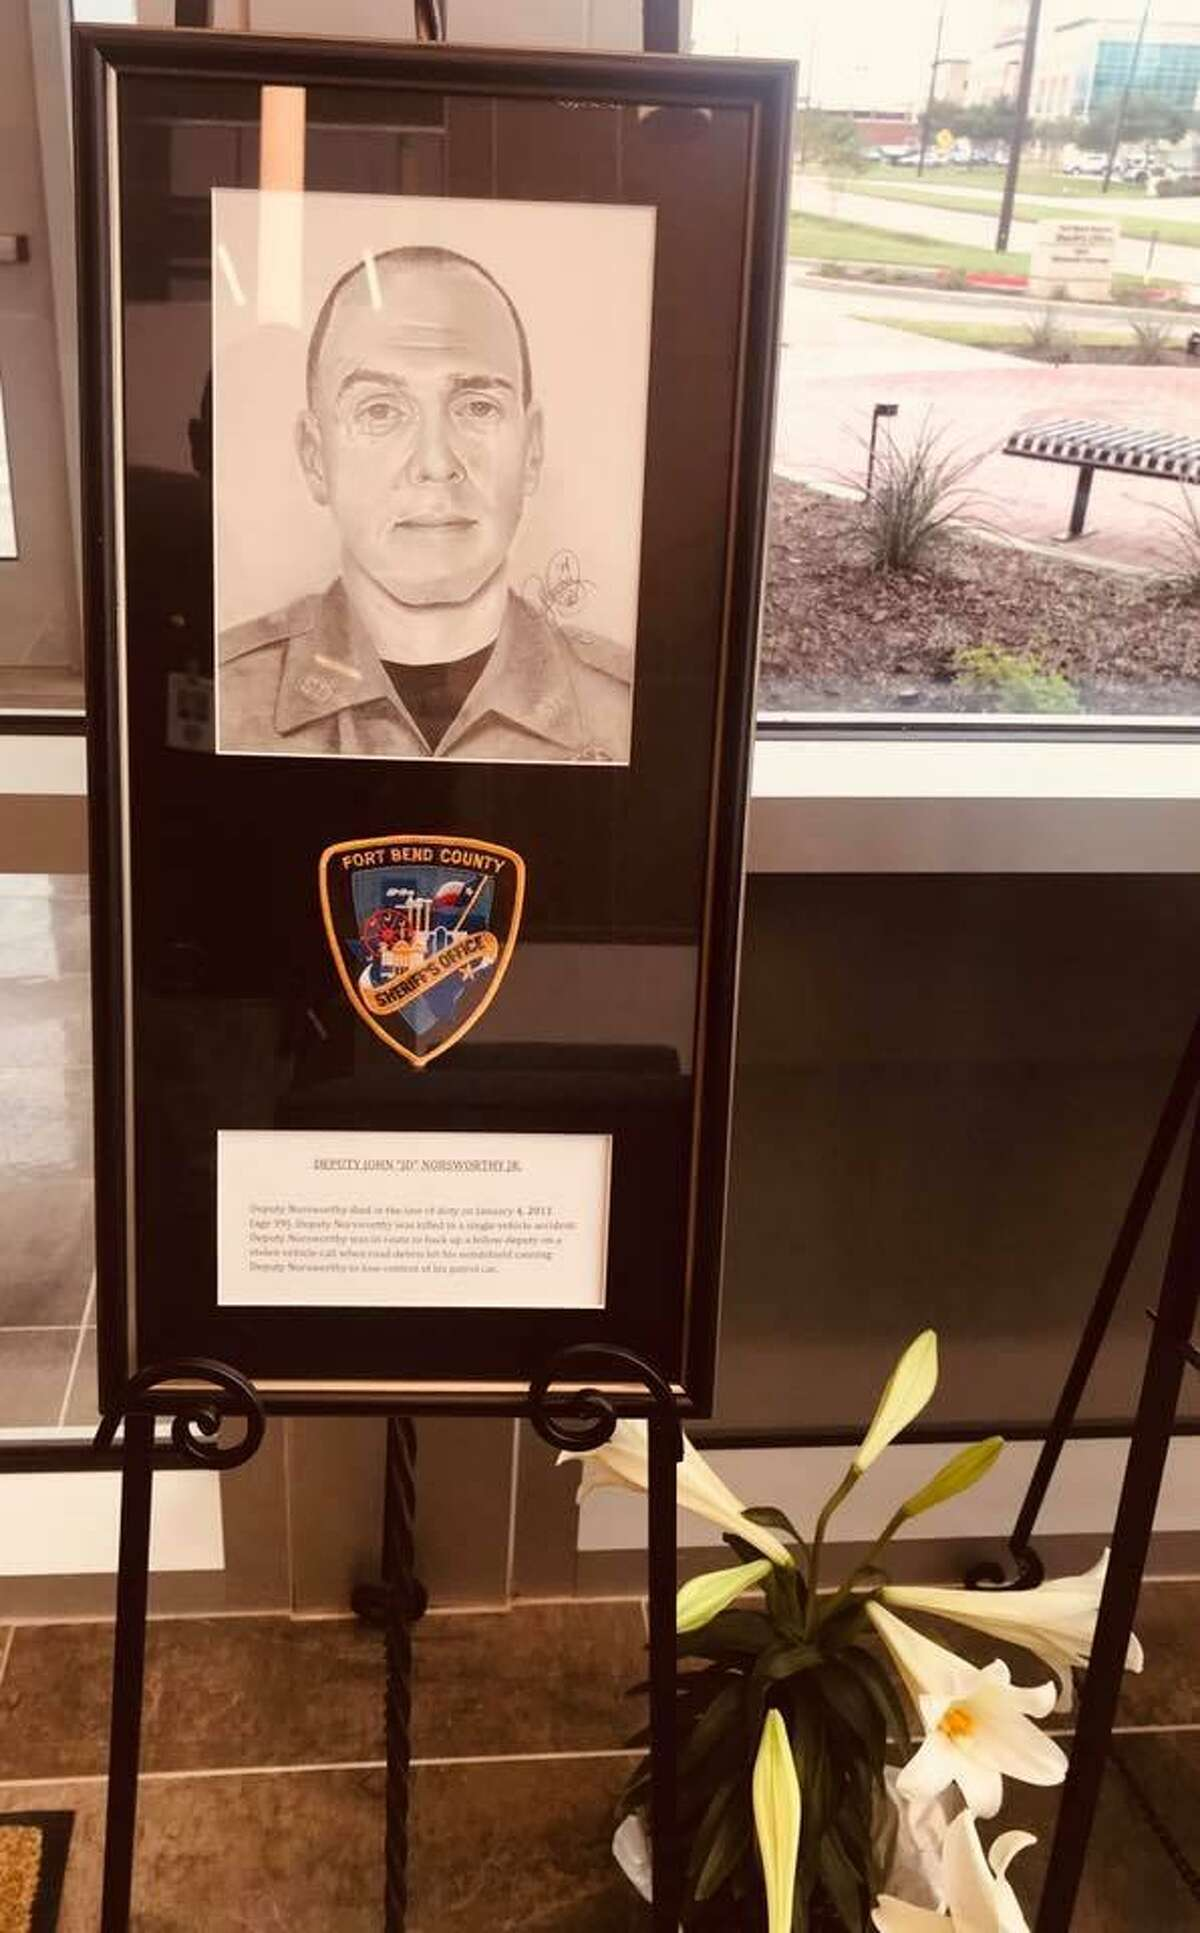 The Fort Bend County Sheriff's Office is commemorating fallen law enforcement officers at their administration building in Richmond, Texas through National Police Week, which ends on May 18.